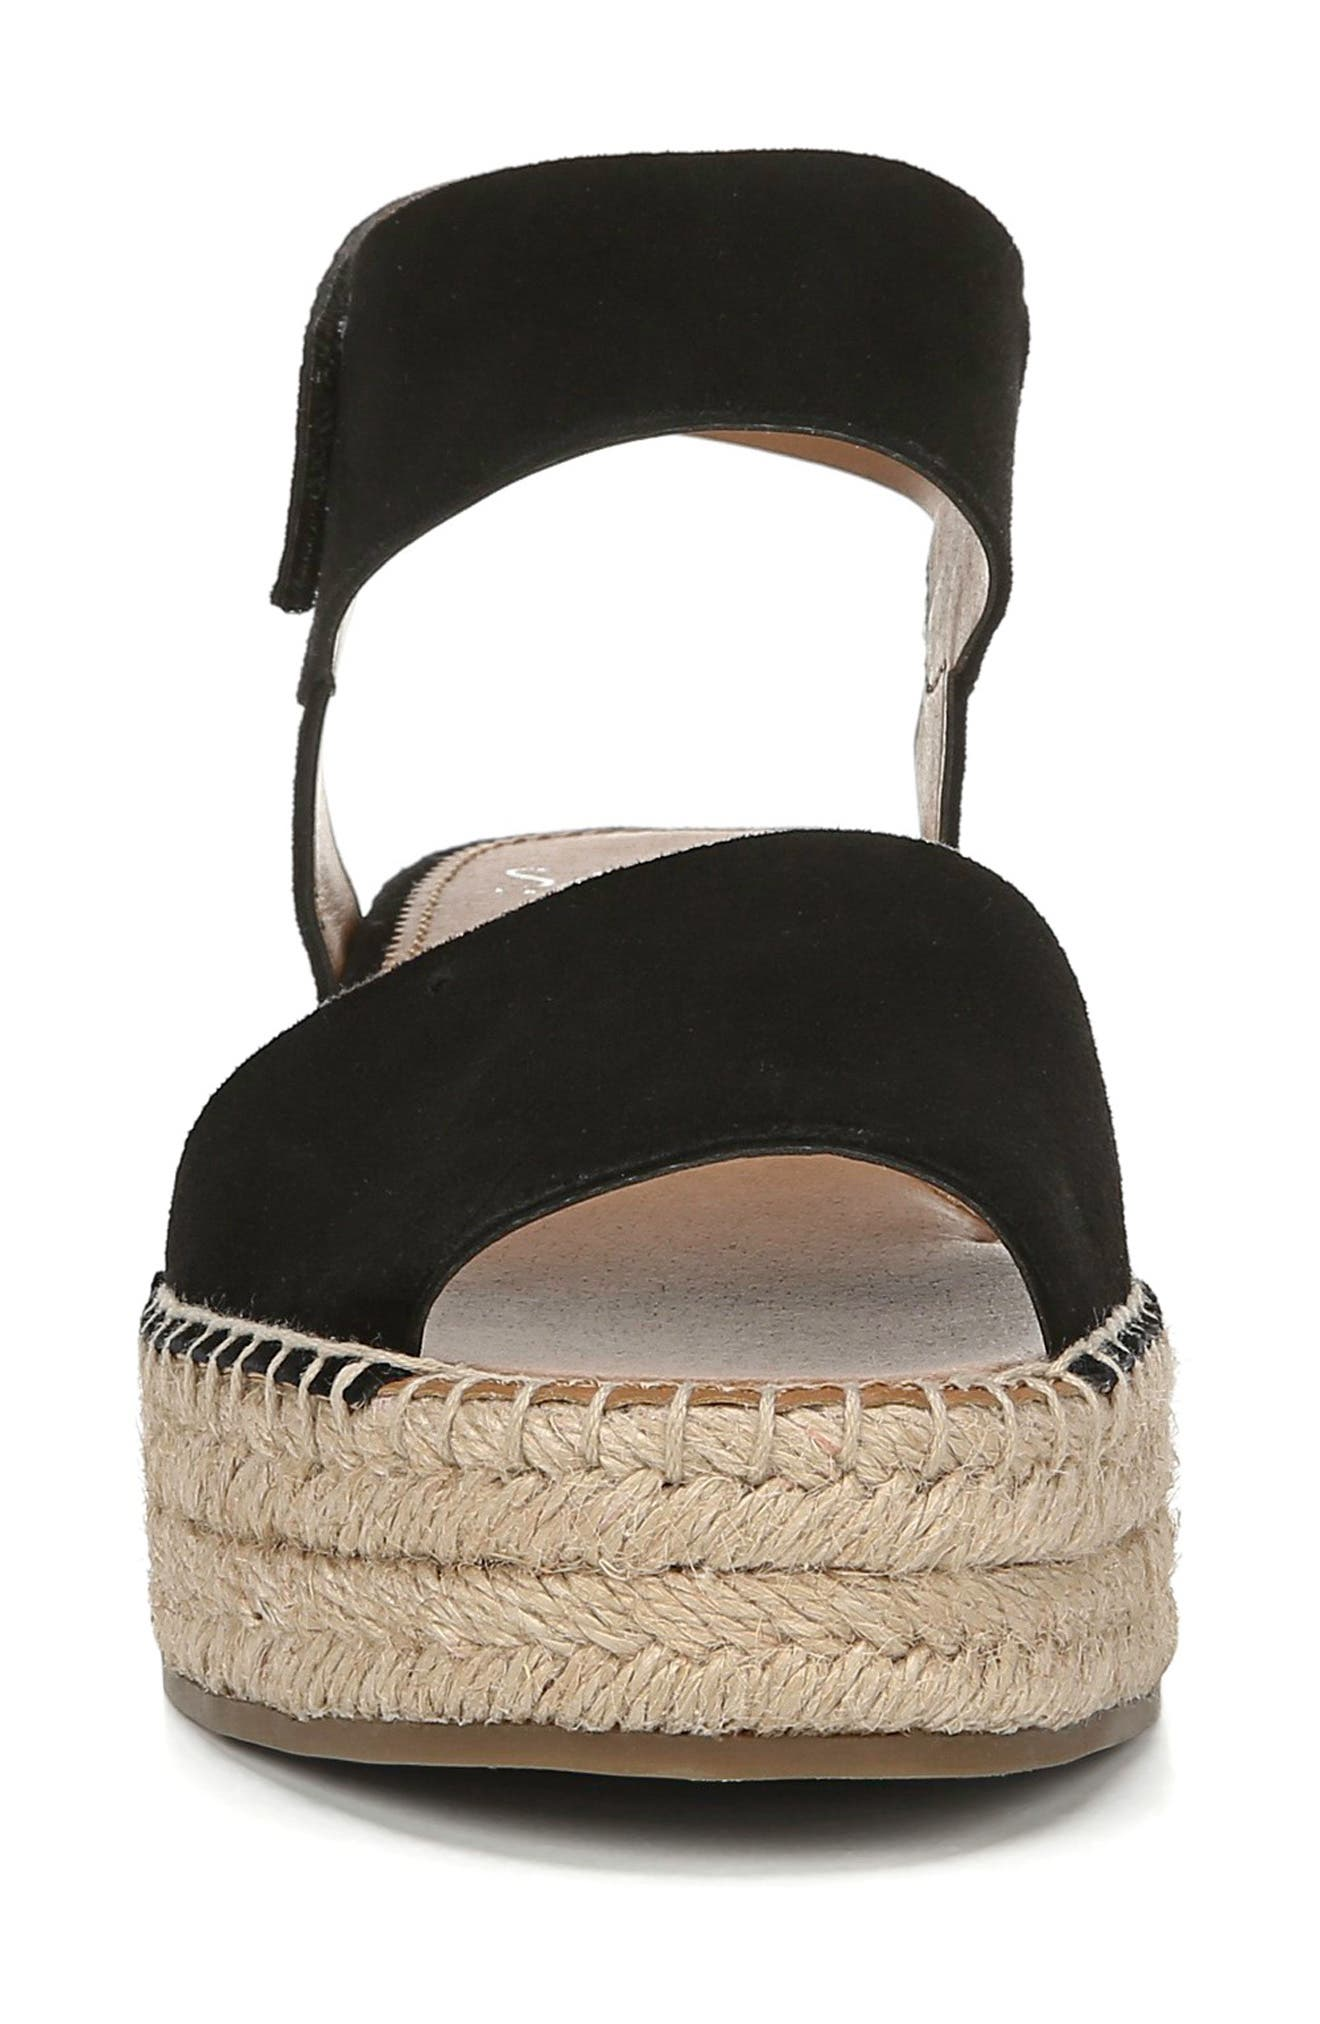 SARTO BY FRANCO SARTO, Oak Platform Wedge Espadrille, Alternate thumbnail 4, color, BLACK SUEDE